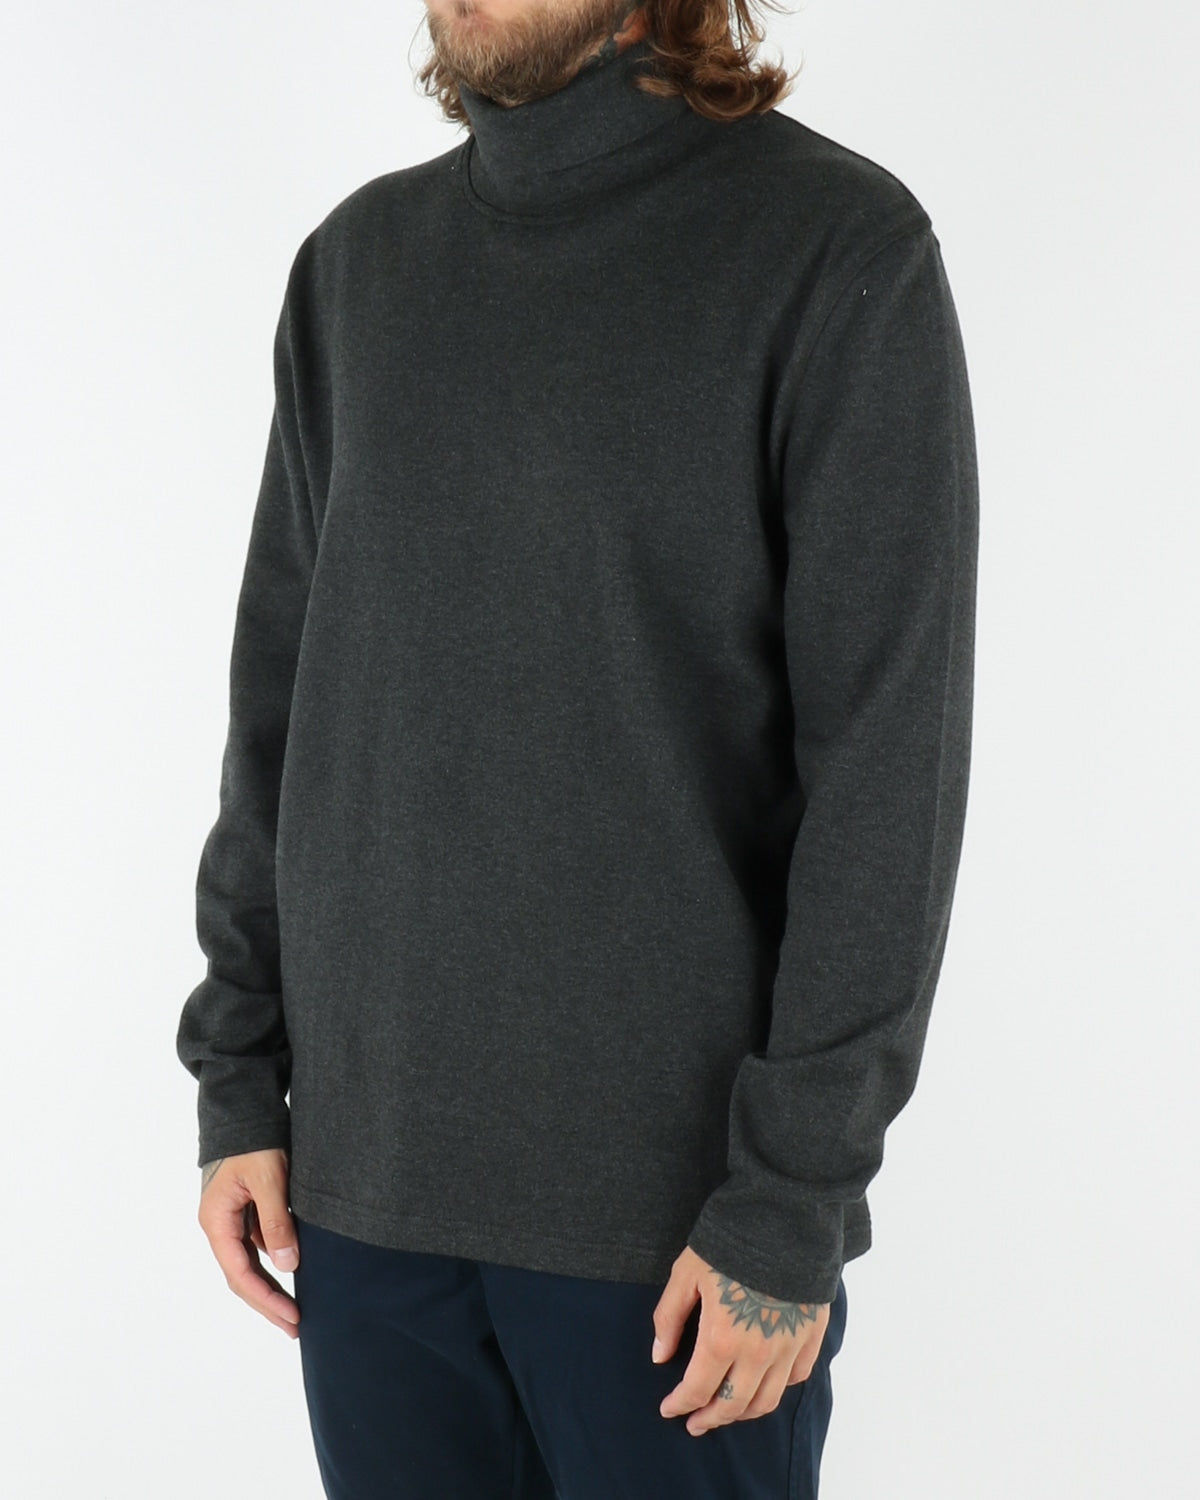 wac we are copenhagen_belushi roll neck_sweatshirt_dark grey melange_view_2_2